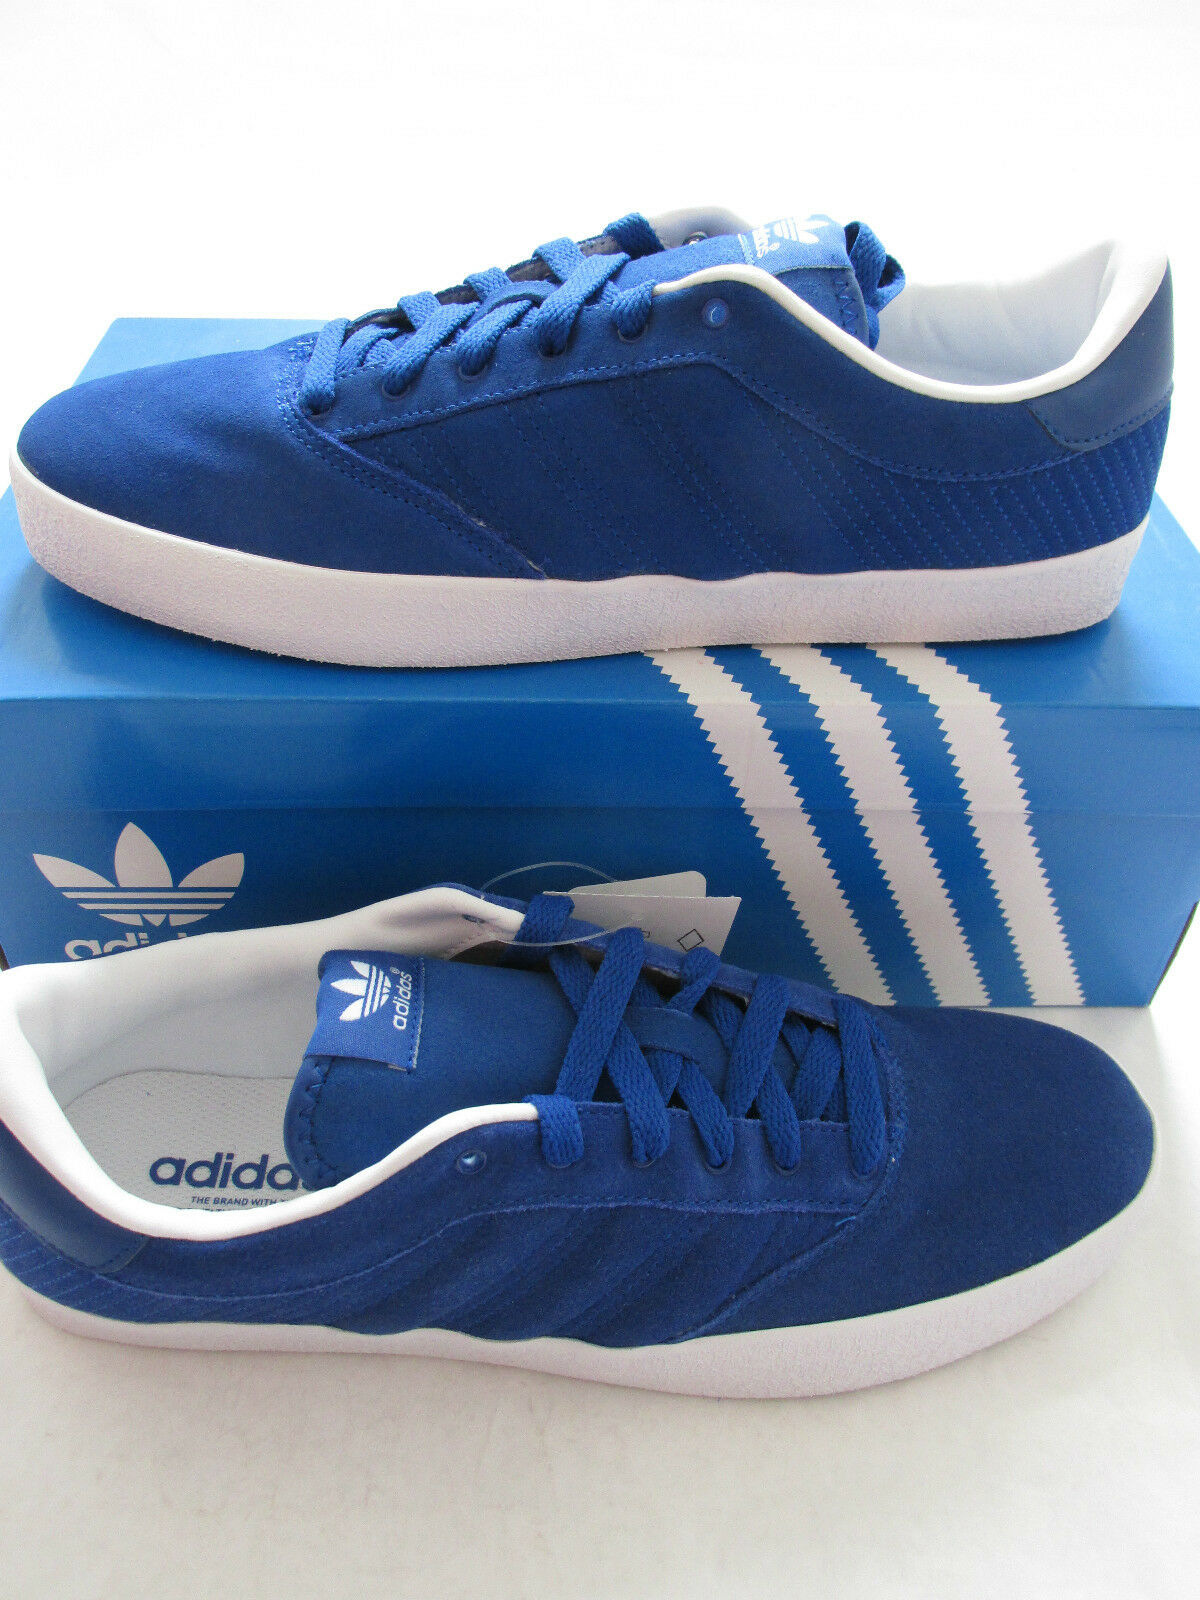 adidas double play originals trainers sneakers running training G95575 casual sneakers trainers a69146